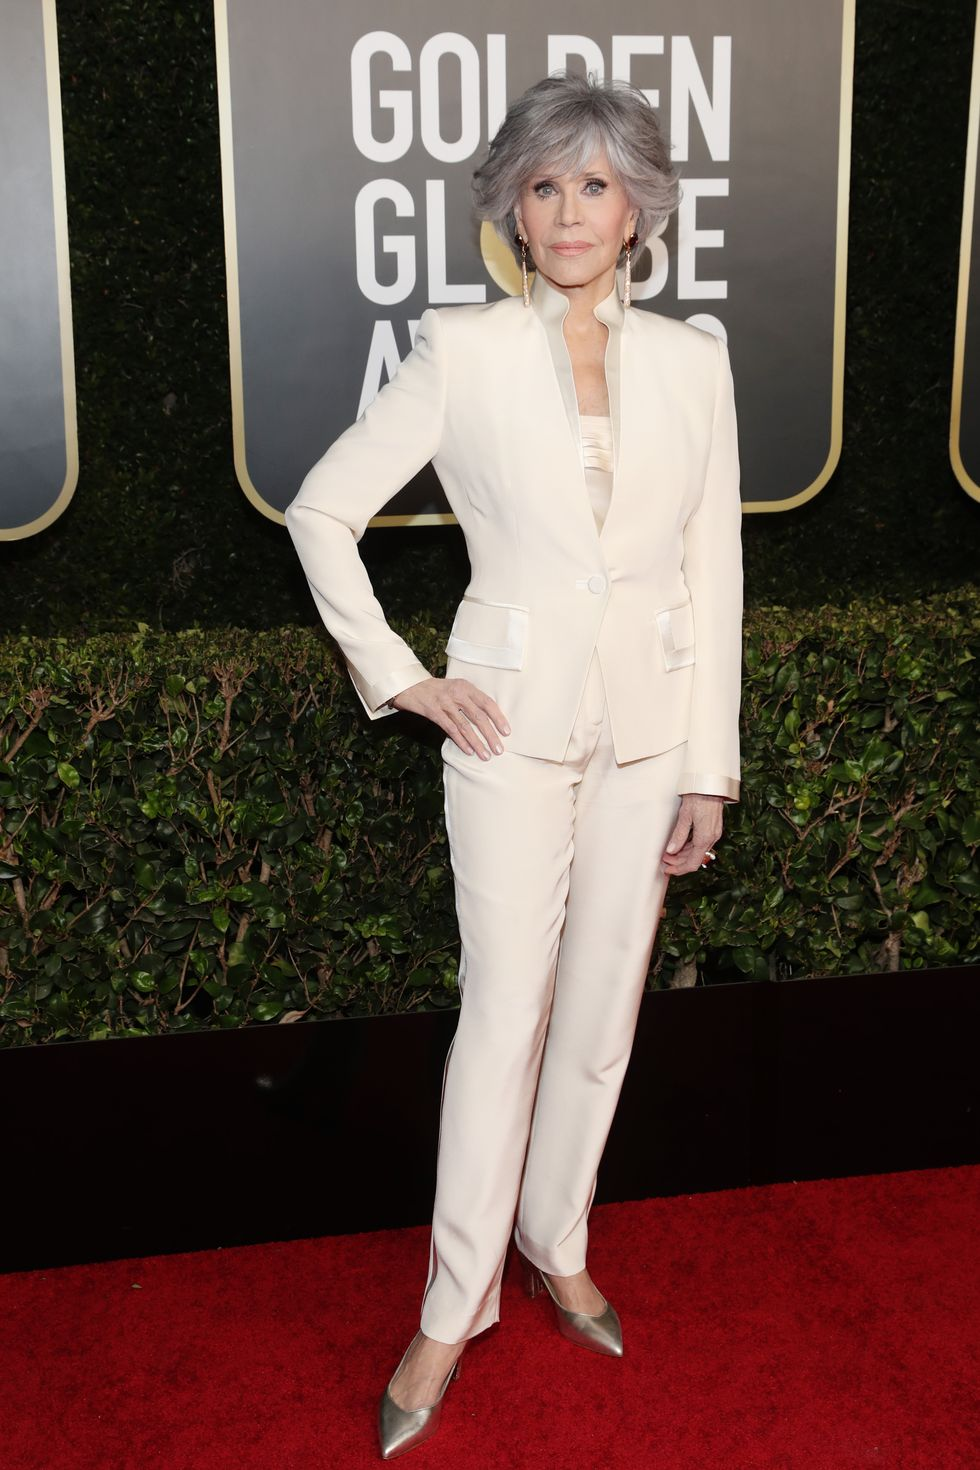 jane-fonda-re-wears-a-chic-white-suit-to-the-2021-golden-globes